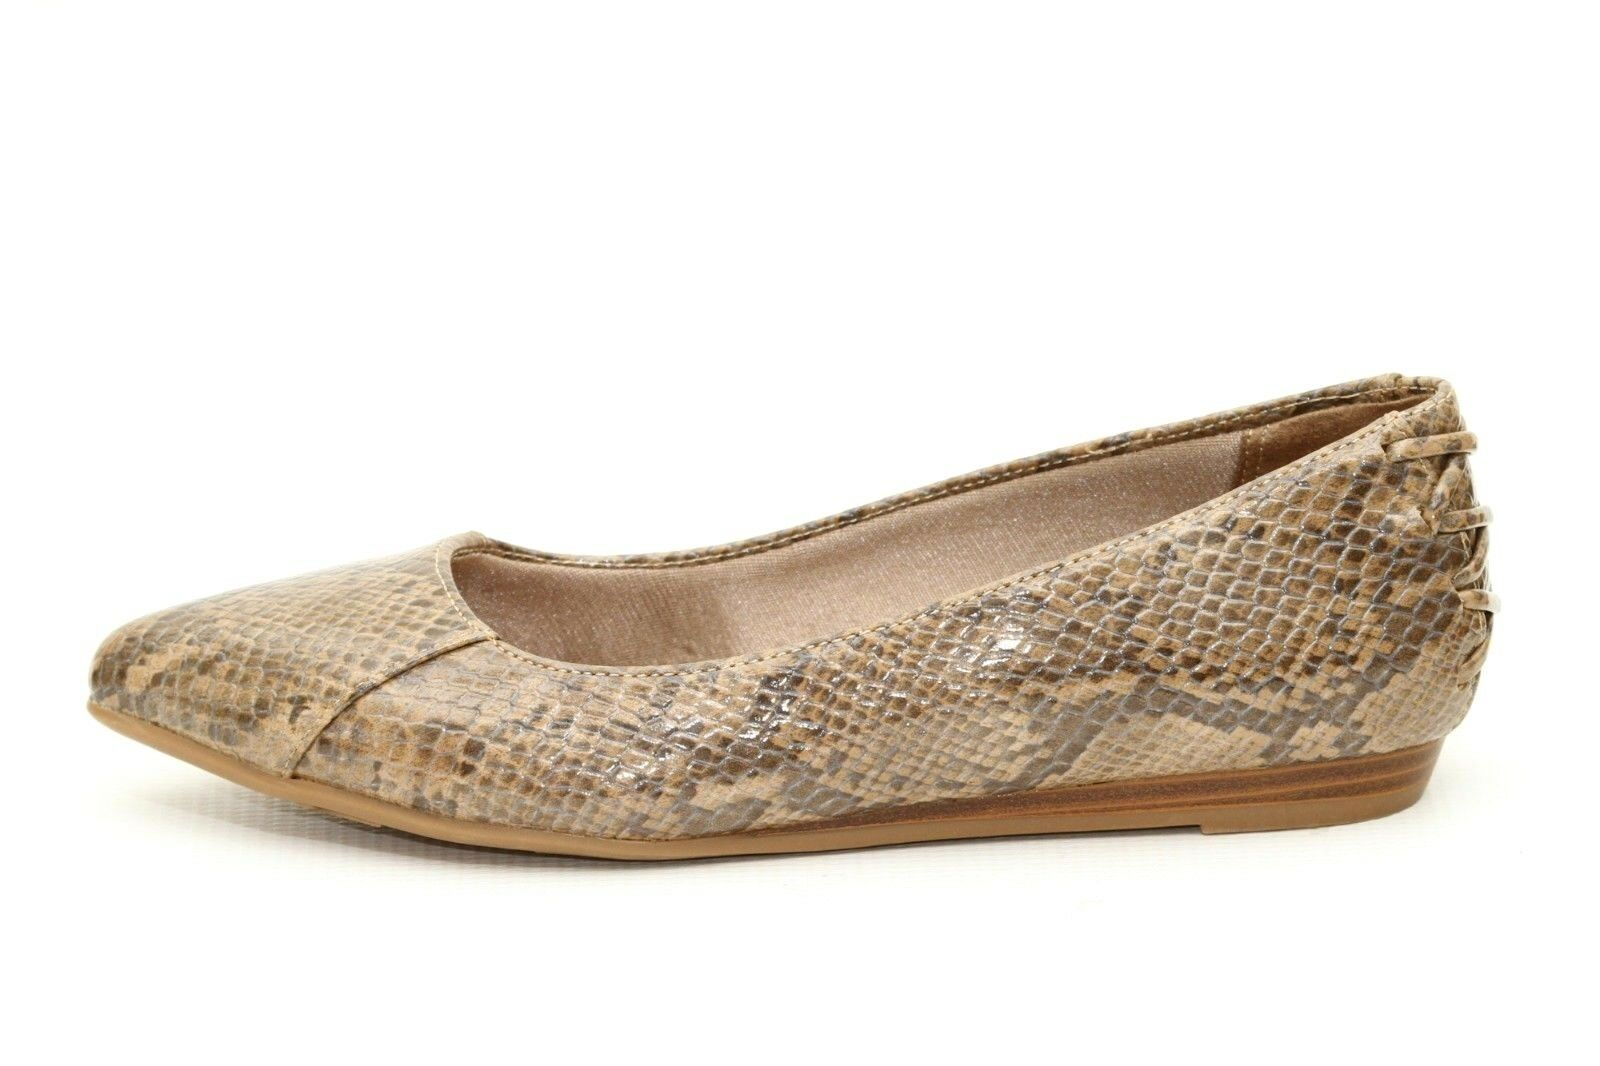 vie chaussures stride  s faux reptile ballerines chaussures vie taille 6 769242